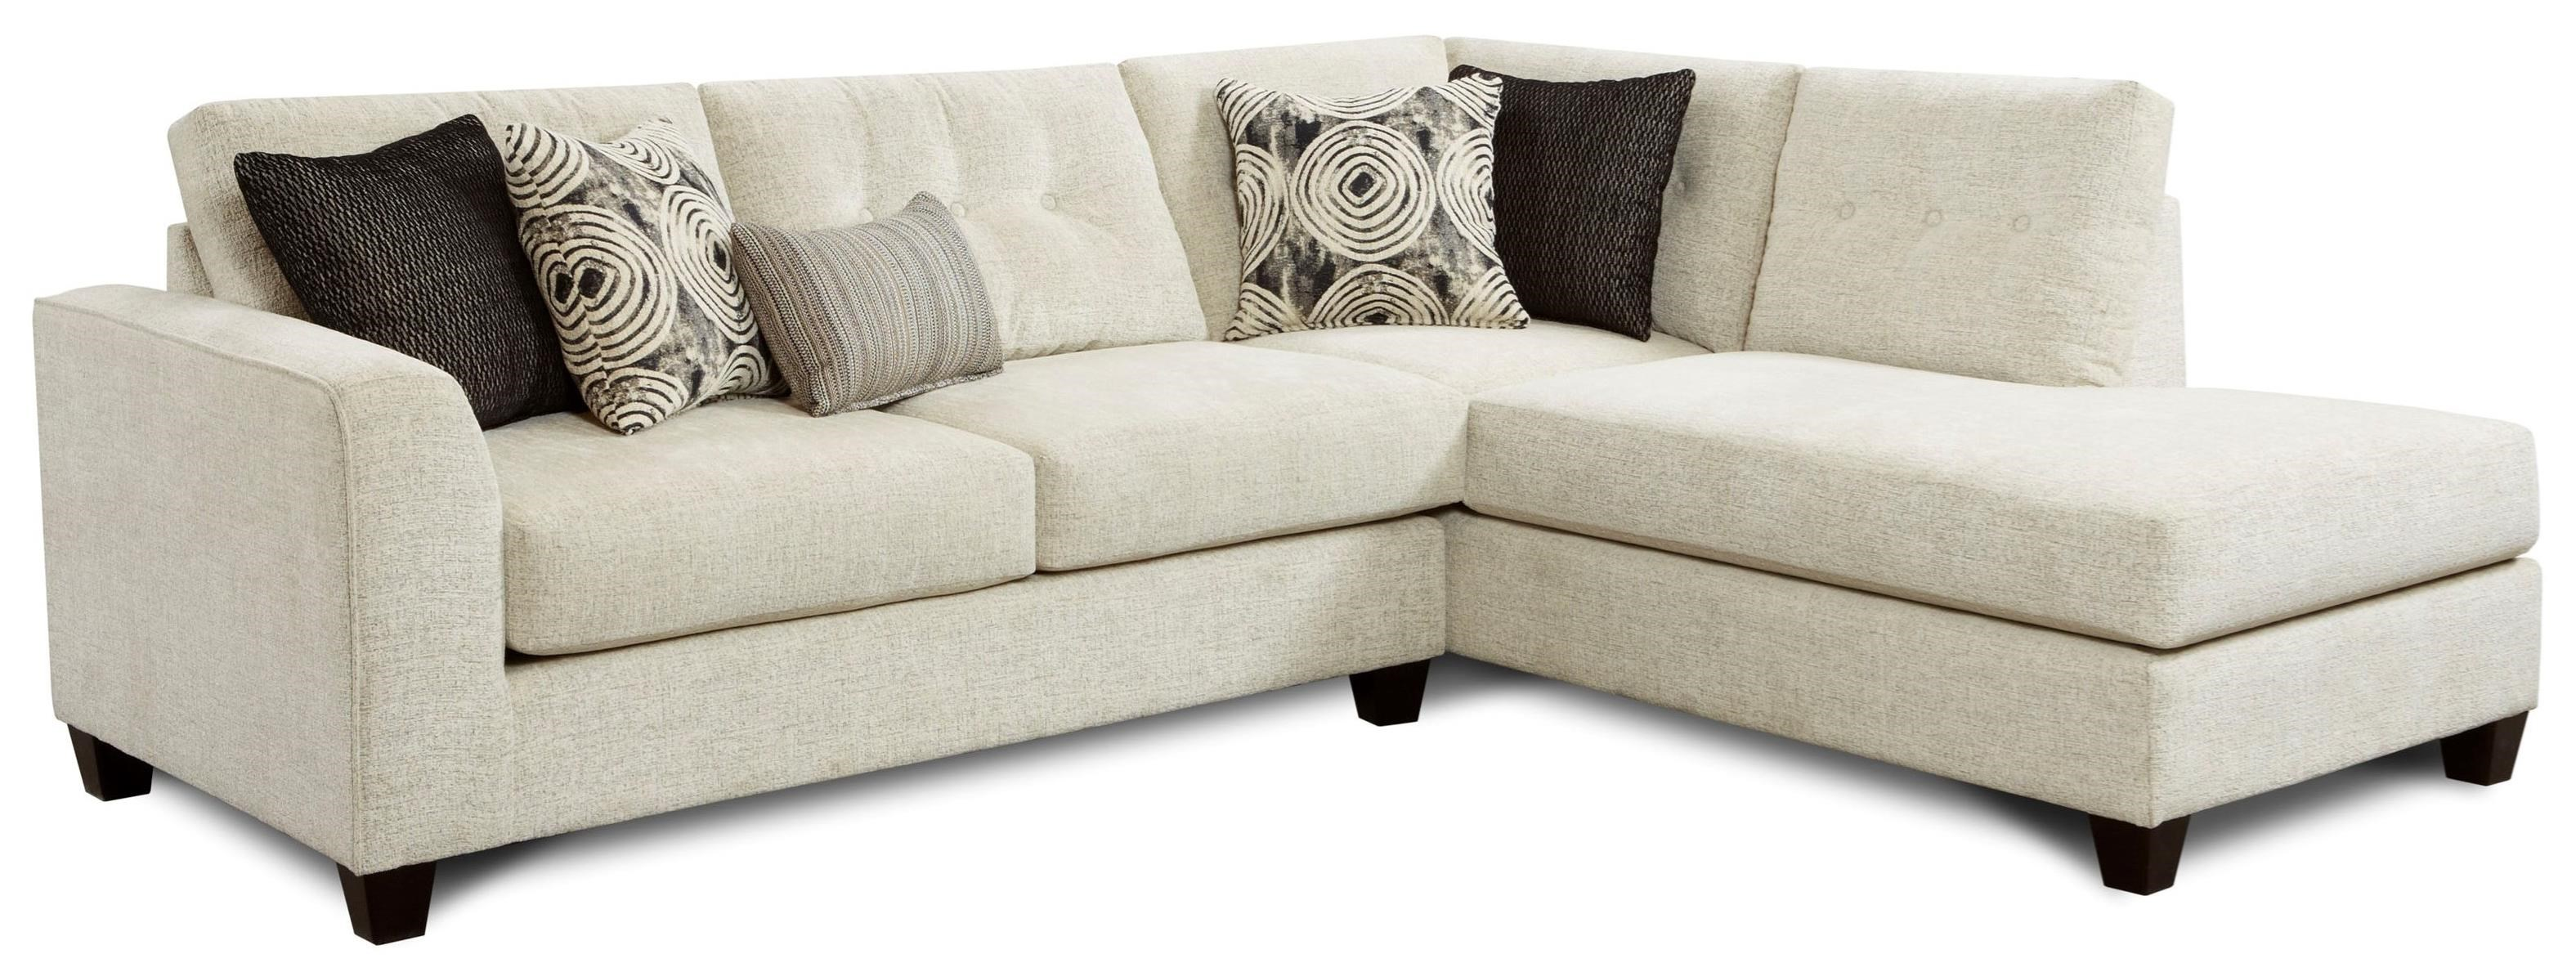 Fusion Furniture 1515 1516 Sectional Sofa   Item Number: 1515 KPPlushtones  Linen+